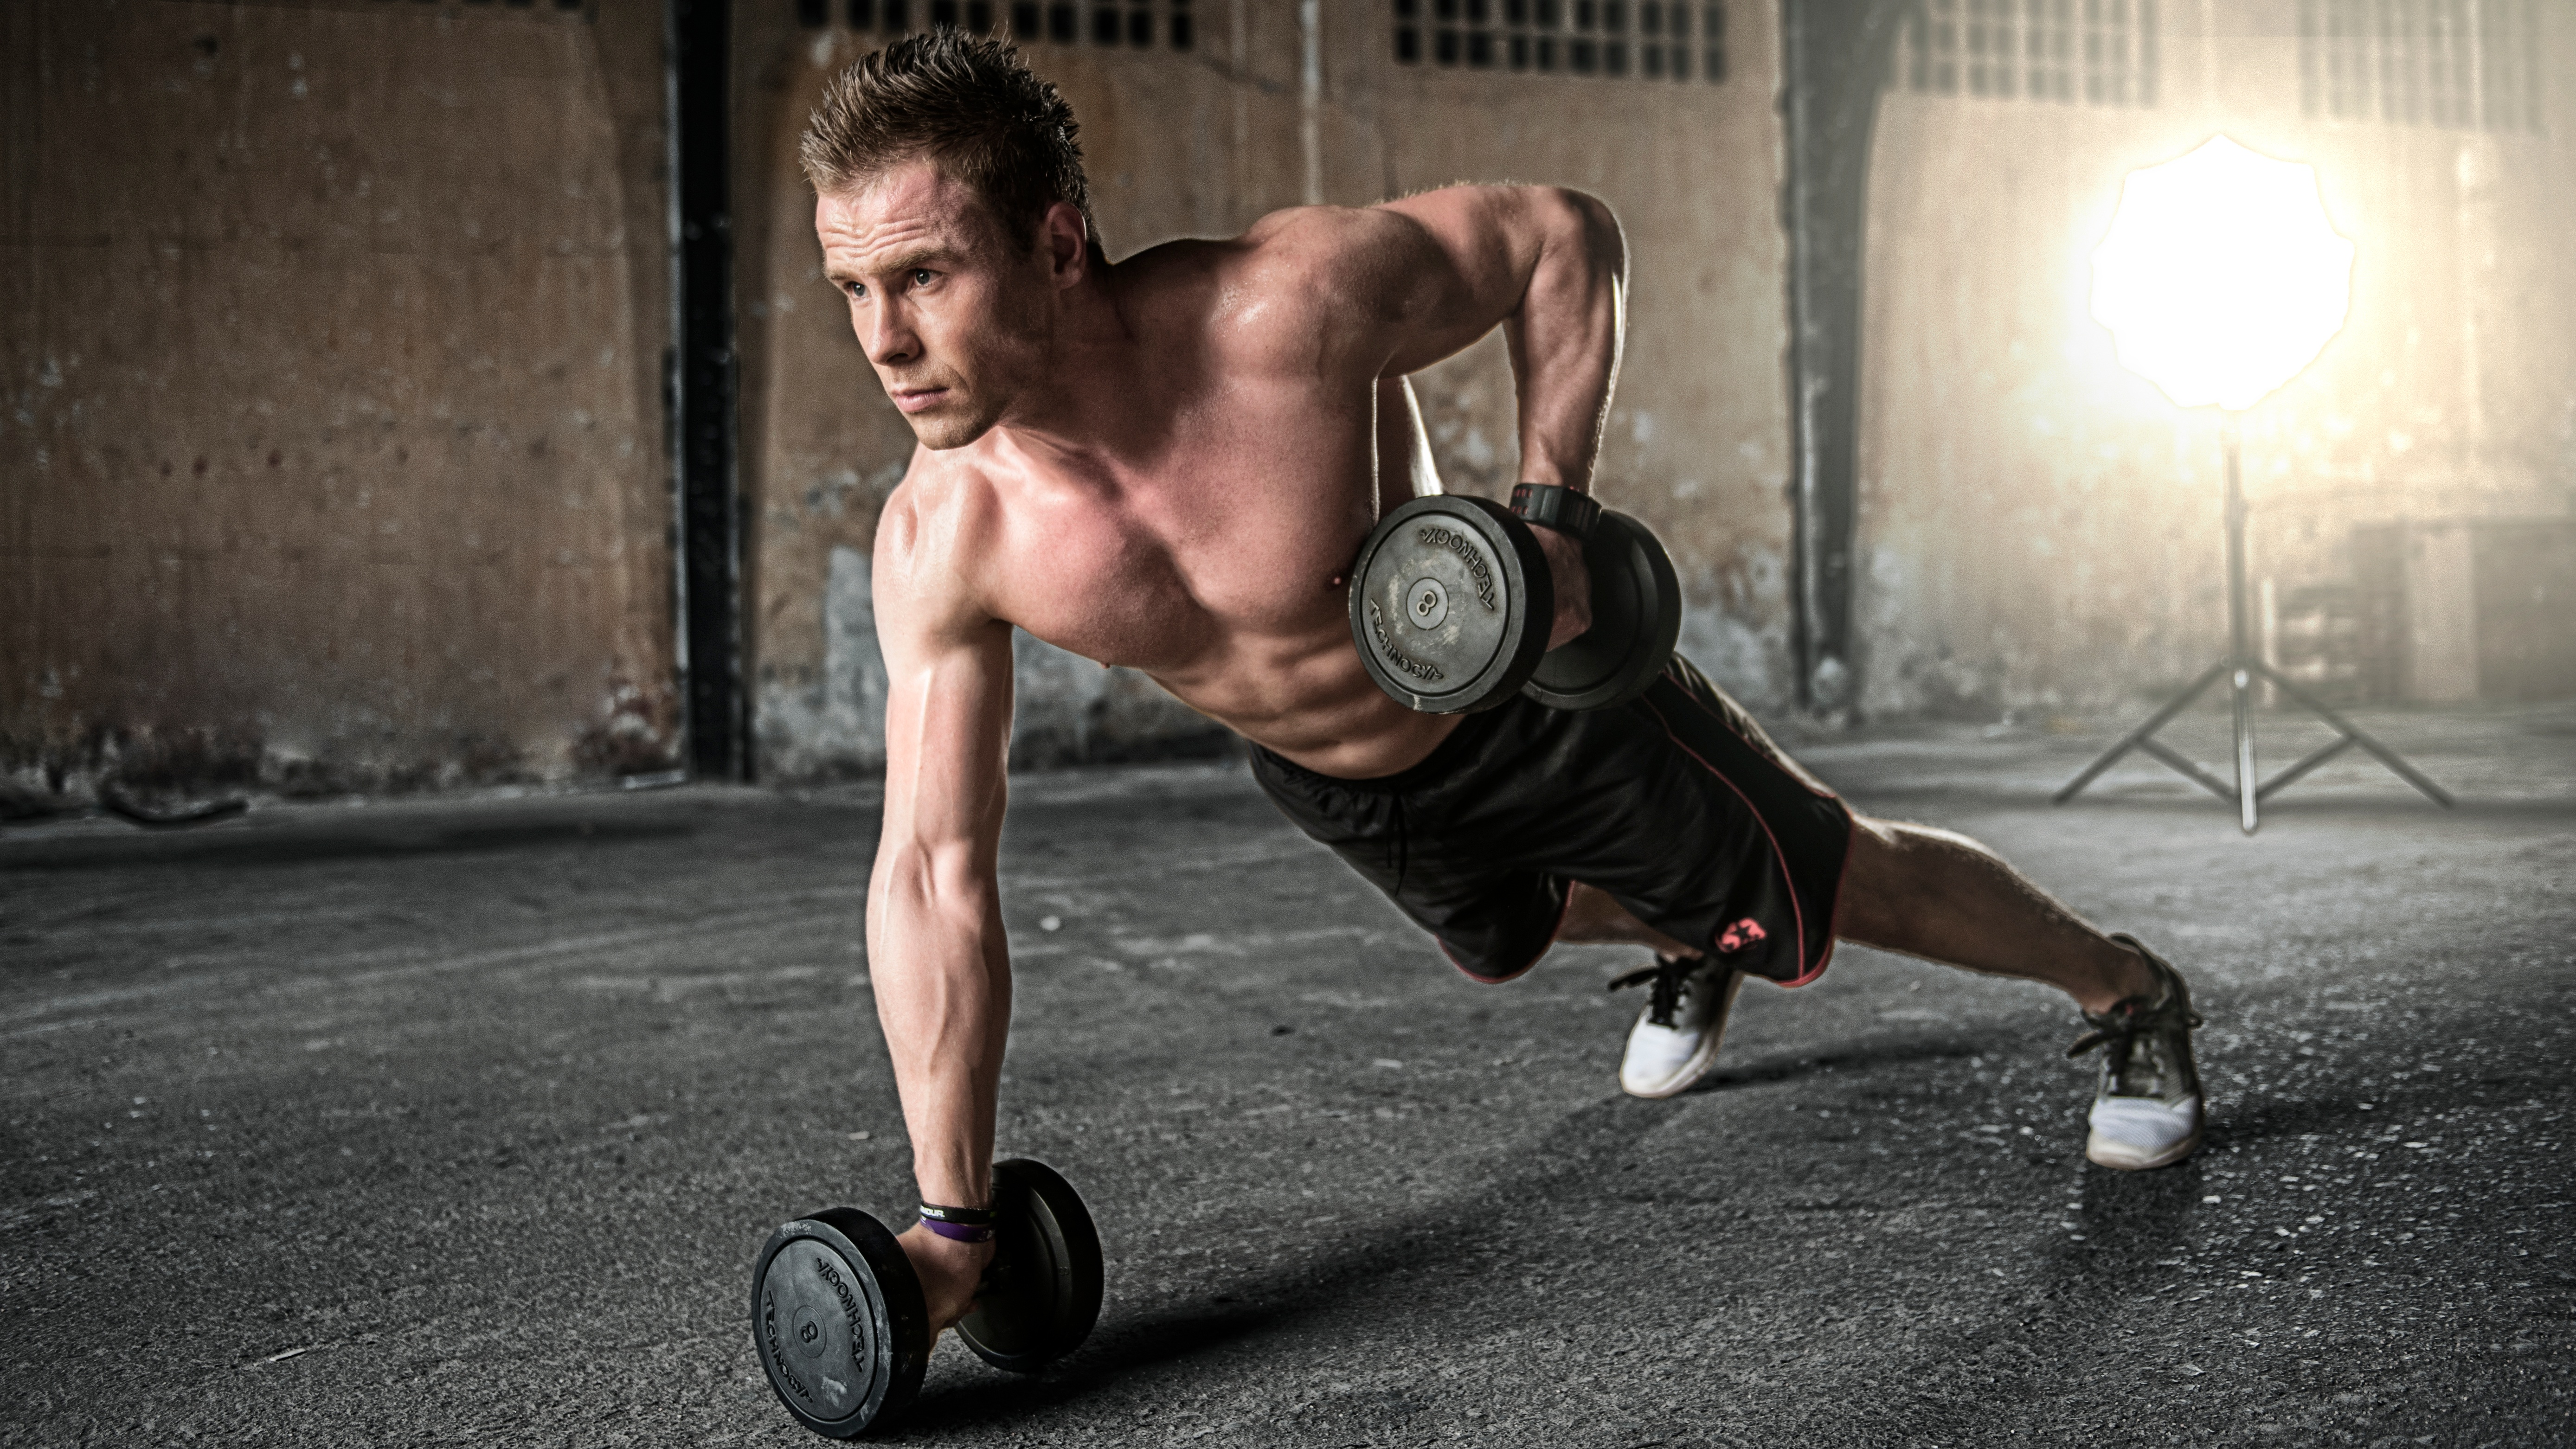 Man working out in athletic shorts and sneakers